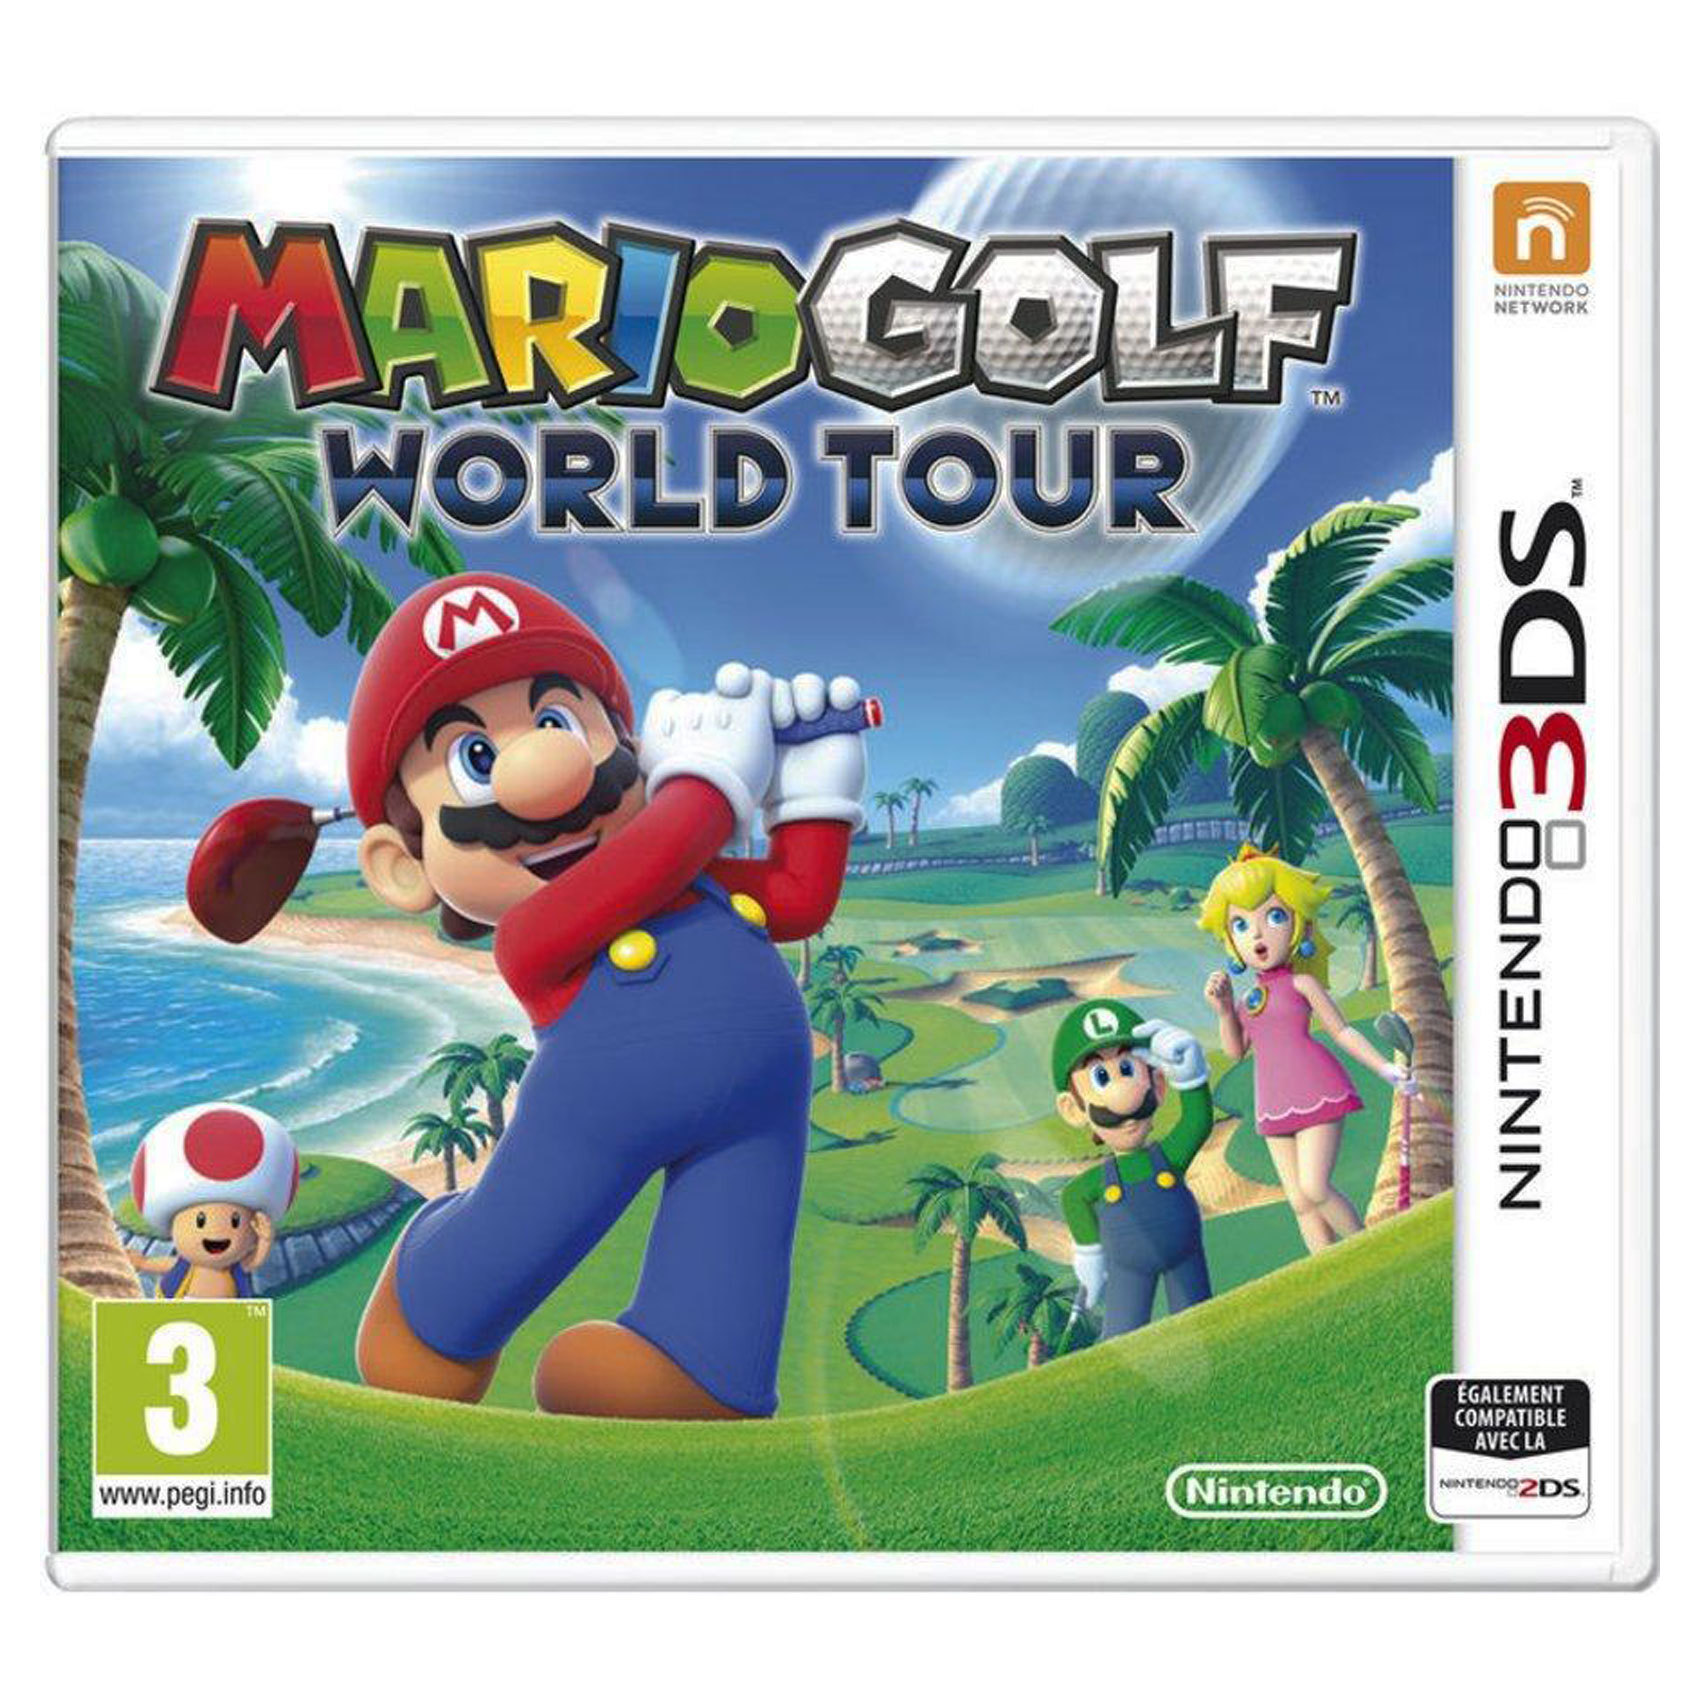 NINTENDO 3DS MARIO GOLF WORLD TOUR